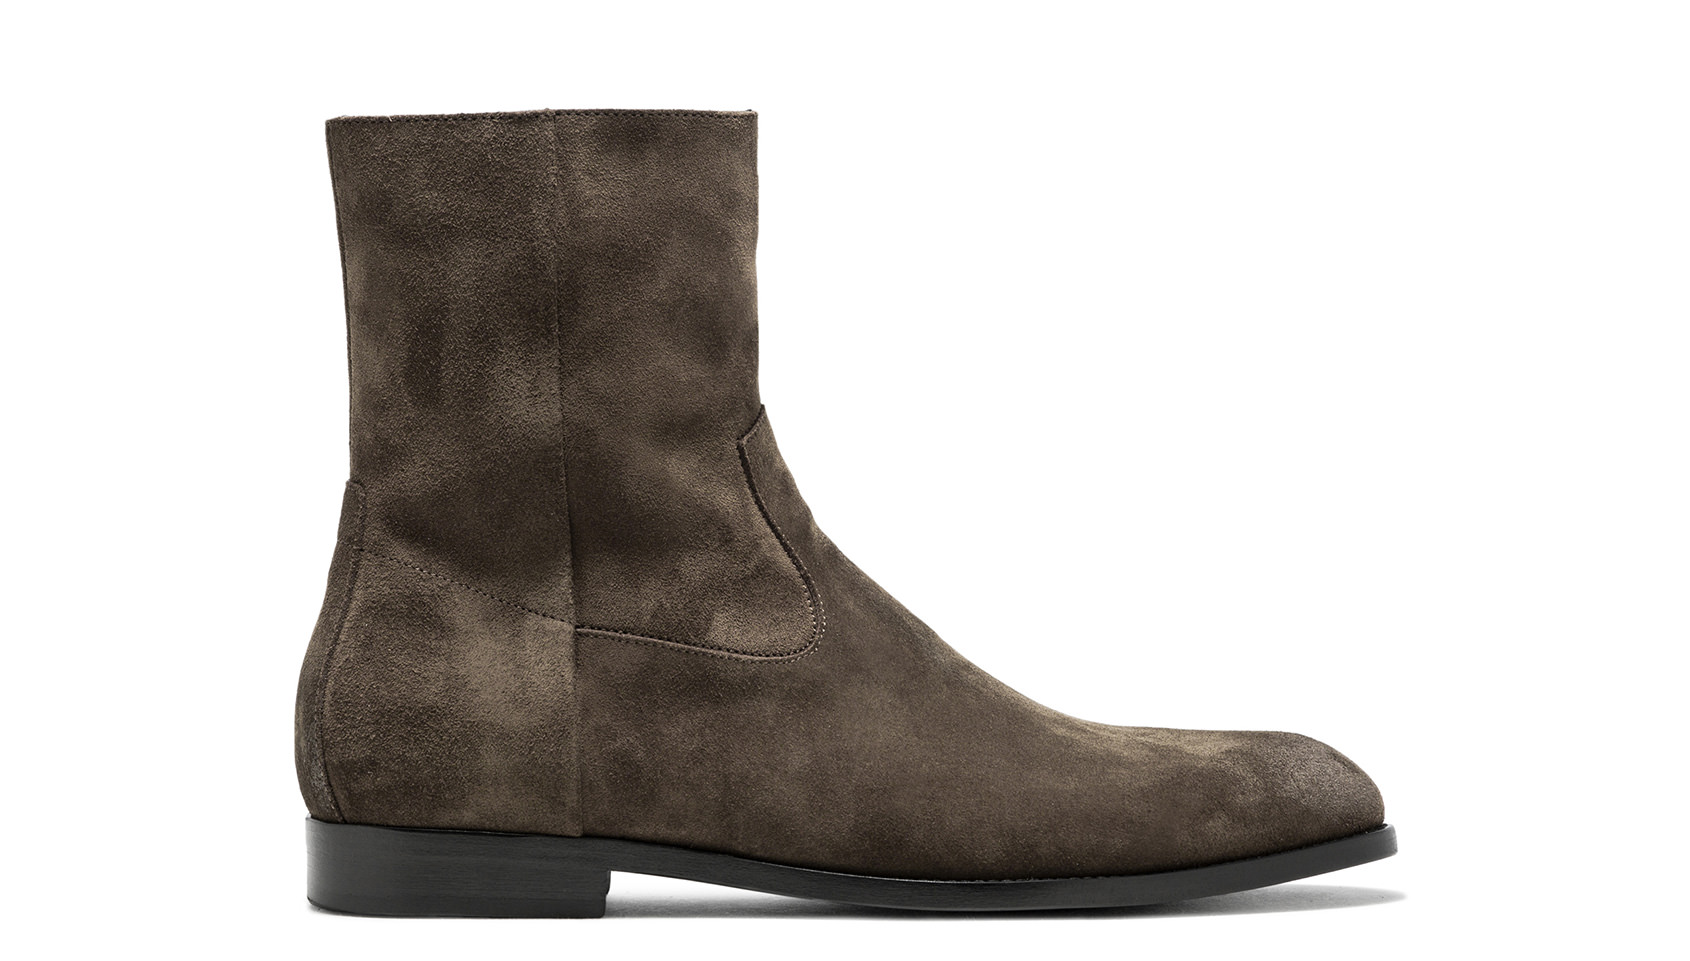 BUTTERO: FOREST GREEN SUEDE FLOYD ANKLE BOOTS